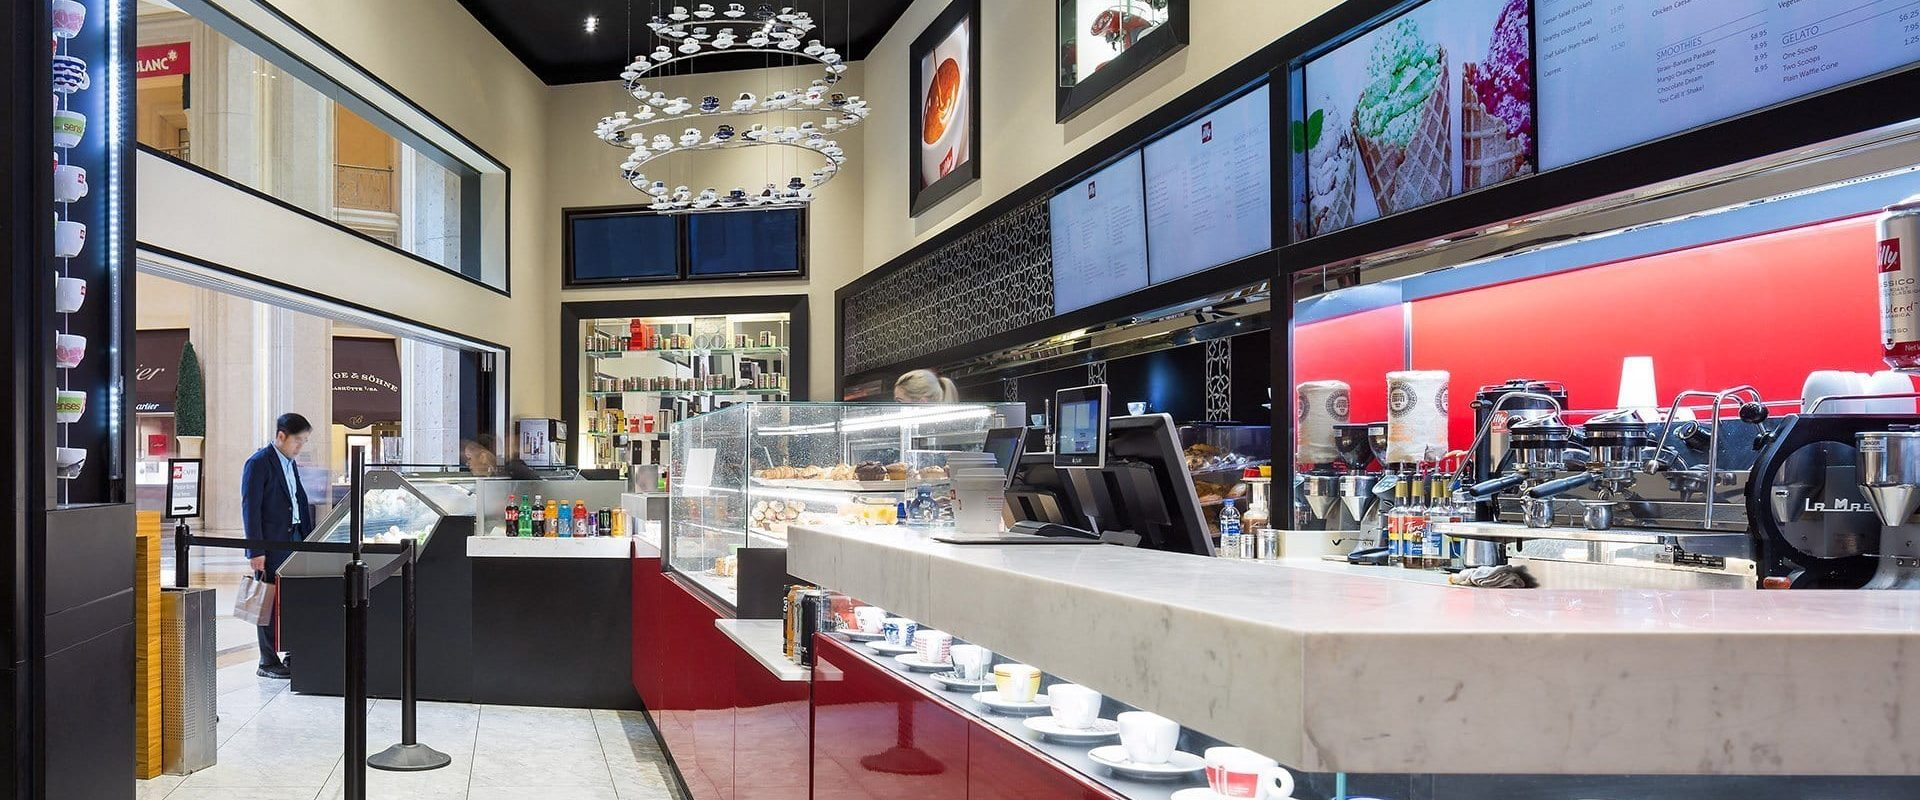 Illy Cafe Architecture Photo